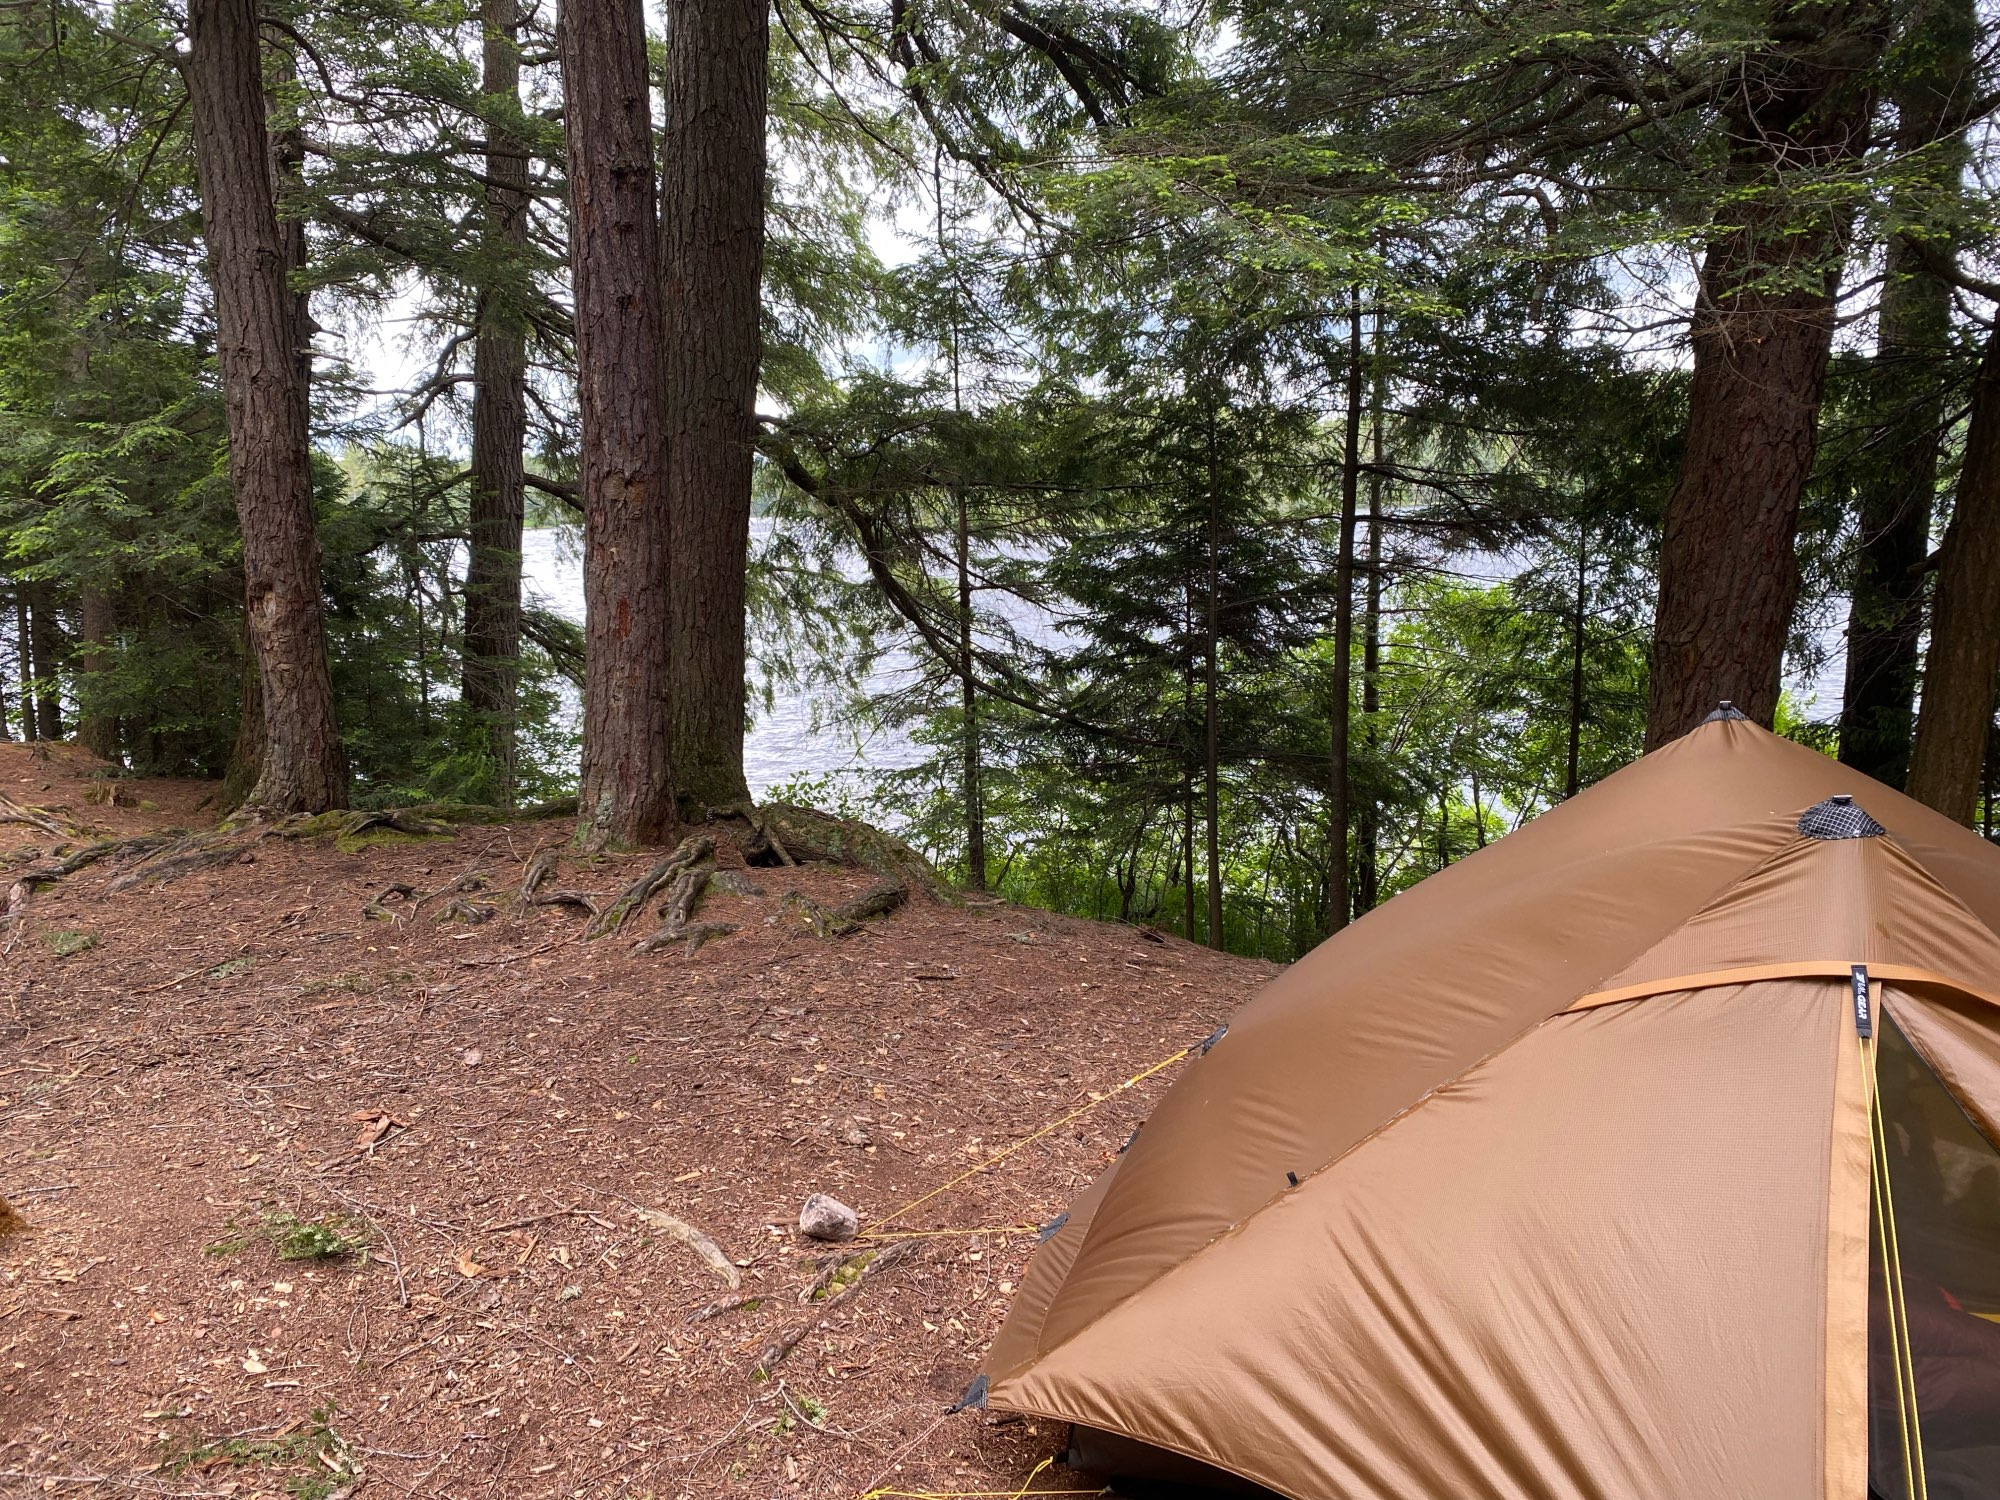 3F Lanshan 2 Pro Just 915 Grams 2 Side 20D Silnylon LightWeight 2 Person No-See-Um 3 And 4 Season Backpacking Camping Tent